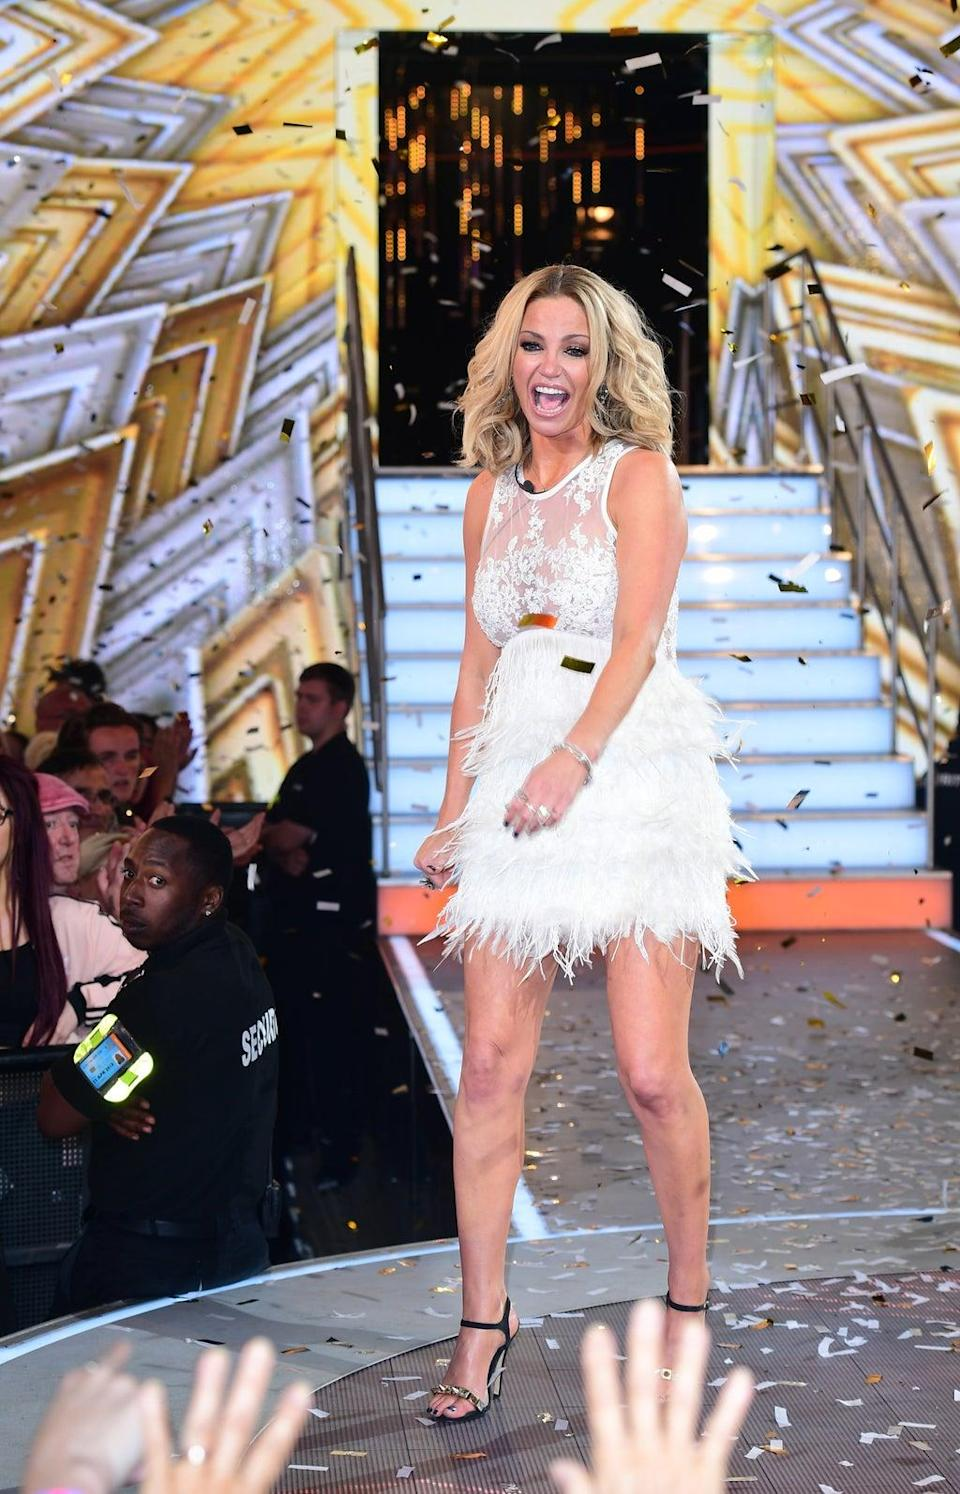 Sarah Harding won Celebrity Big Brother in 2017 (Ian West/PA) (PA Archive)